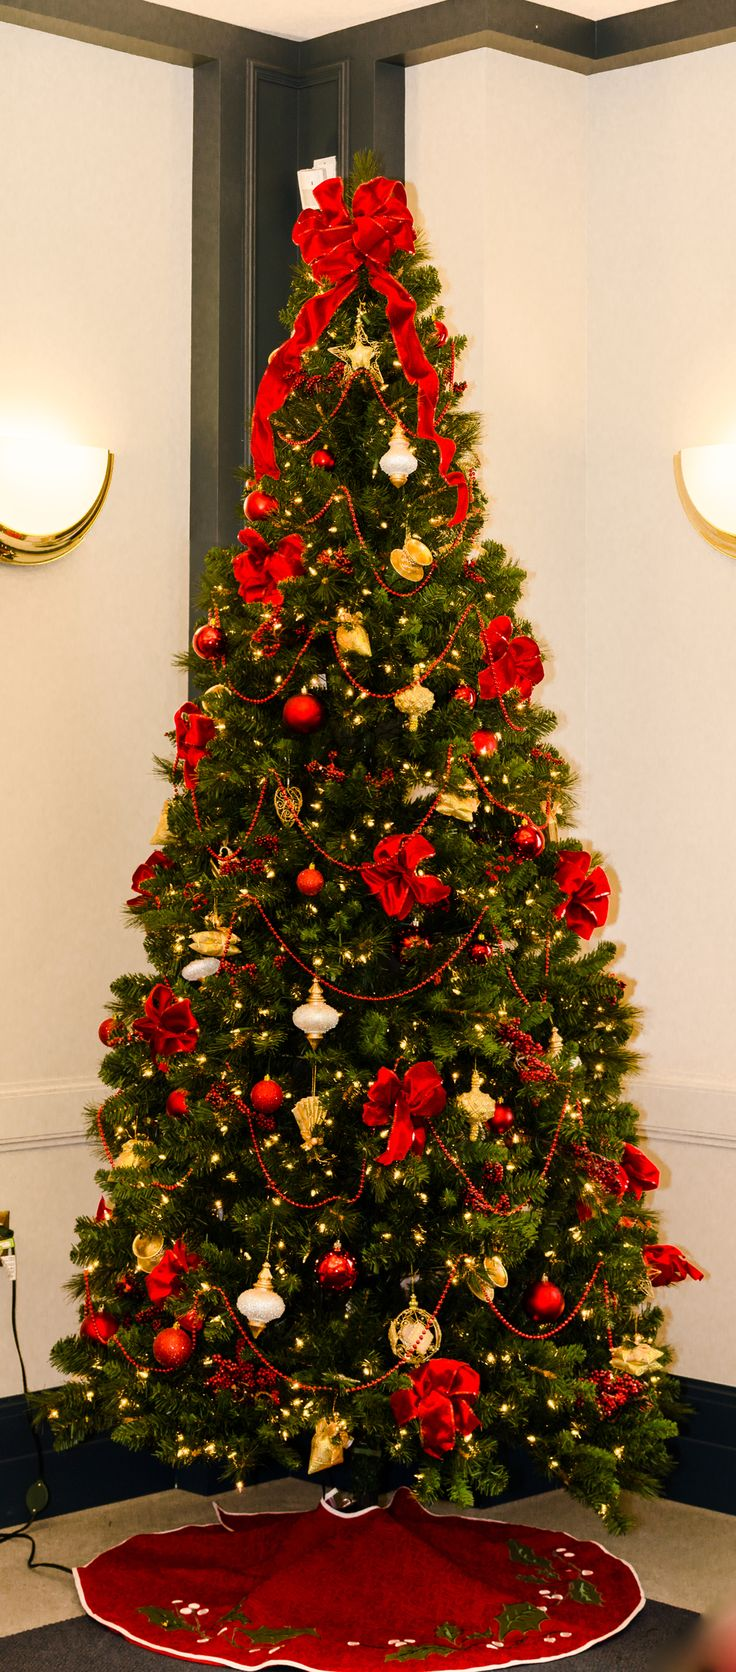 Christmas Tree http://www.martysmegapixels.pro/attractions/christmastree